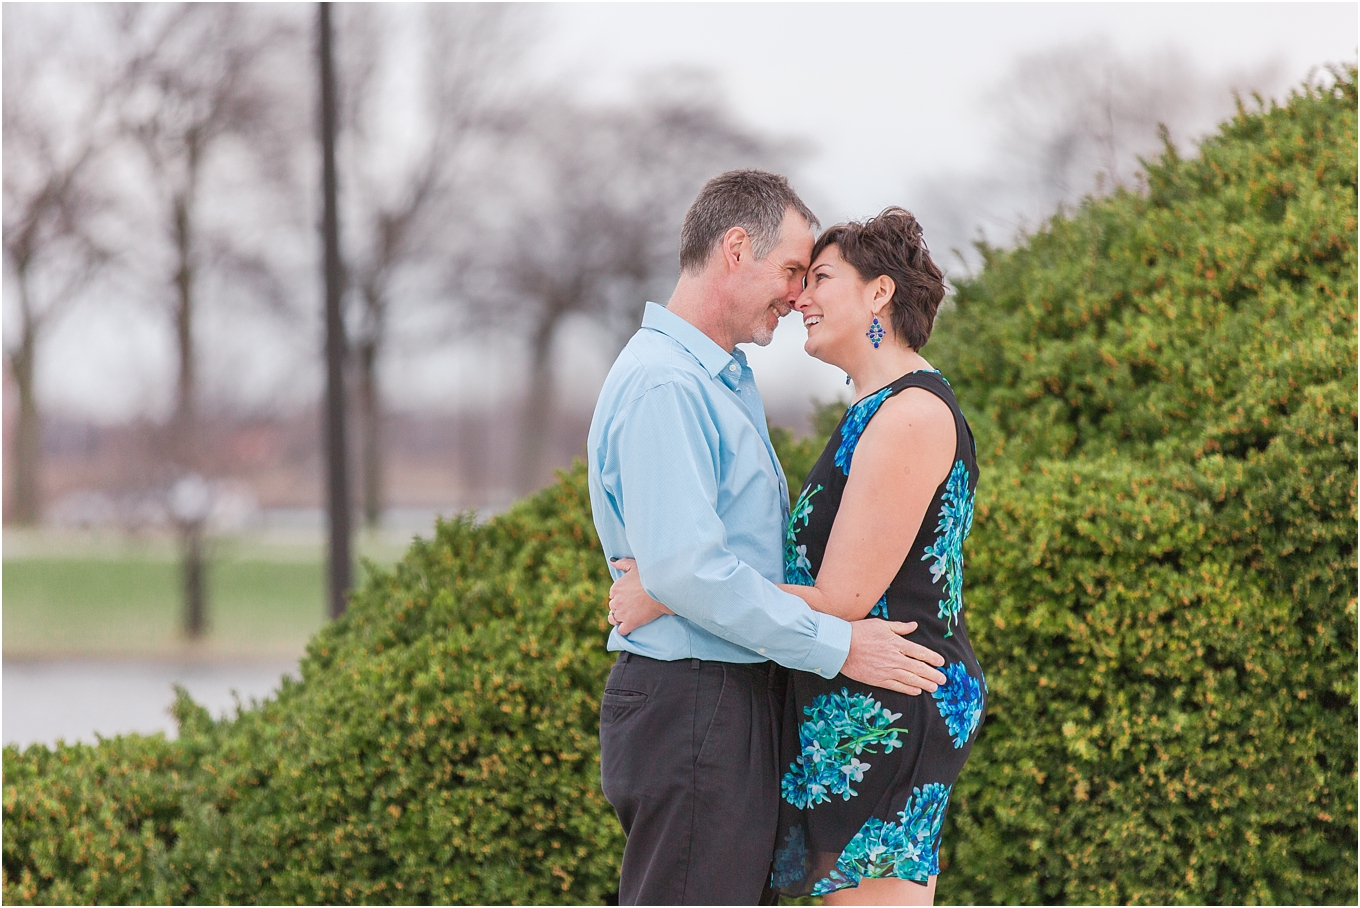 downtown-detroit-engagement-photos-on-belle-isle-by-courtney-carolyn-photography_0027.jpg